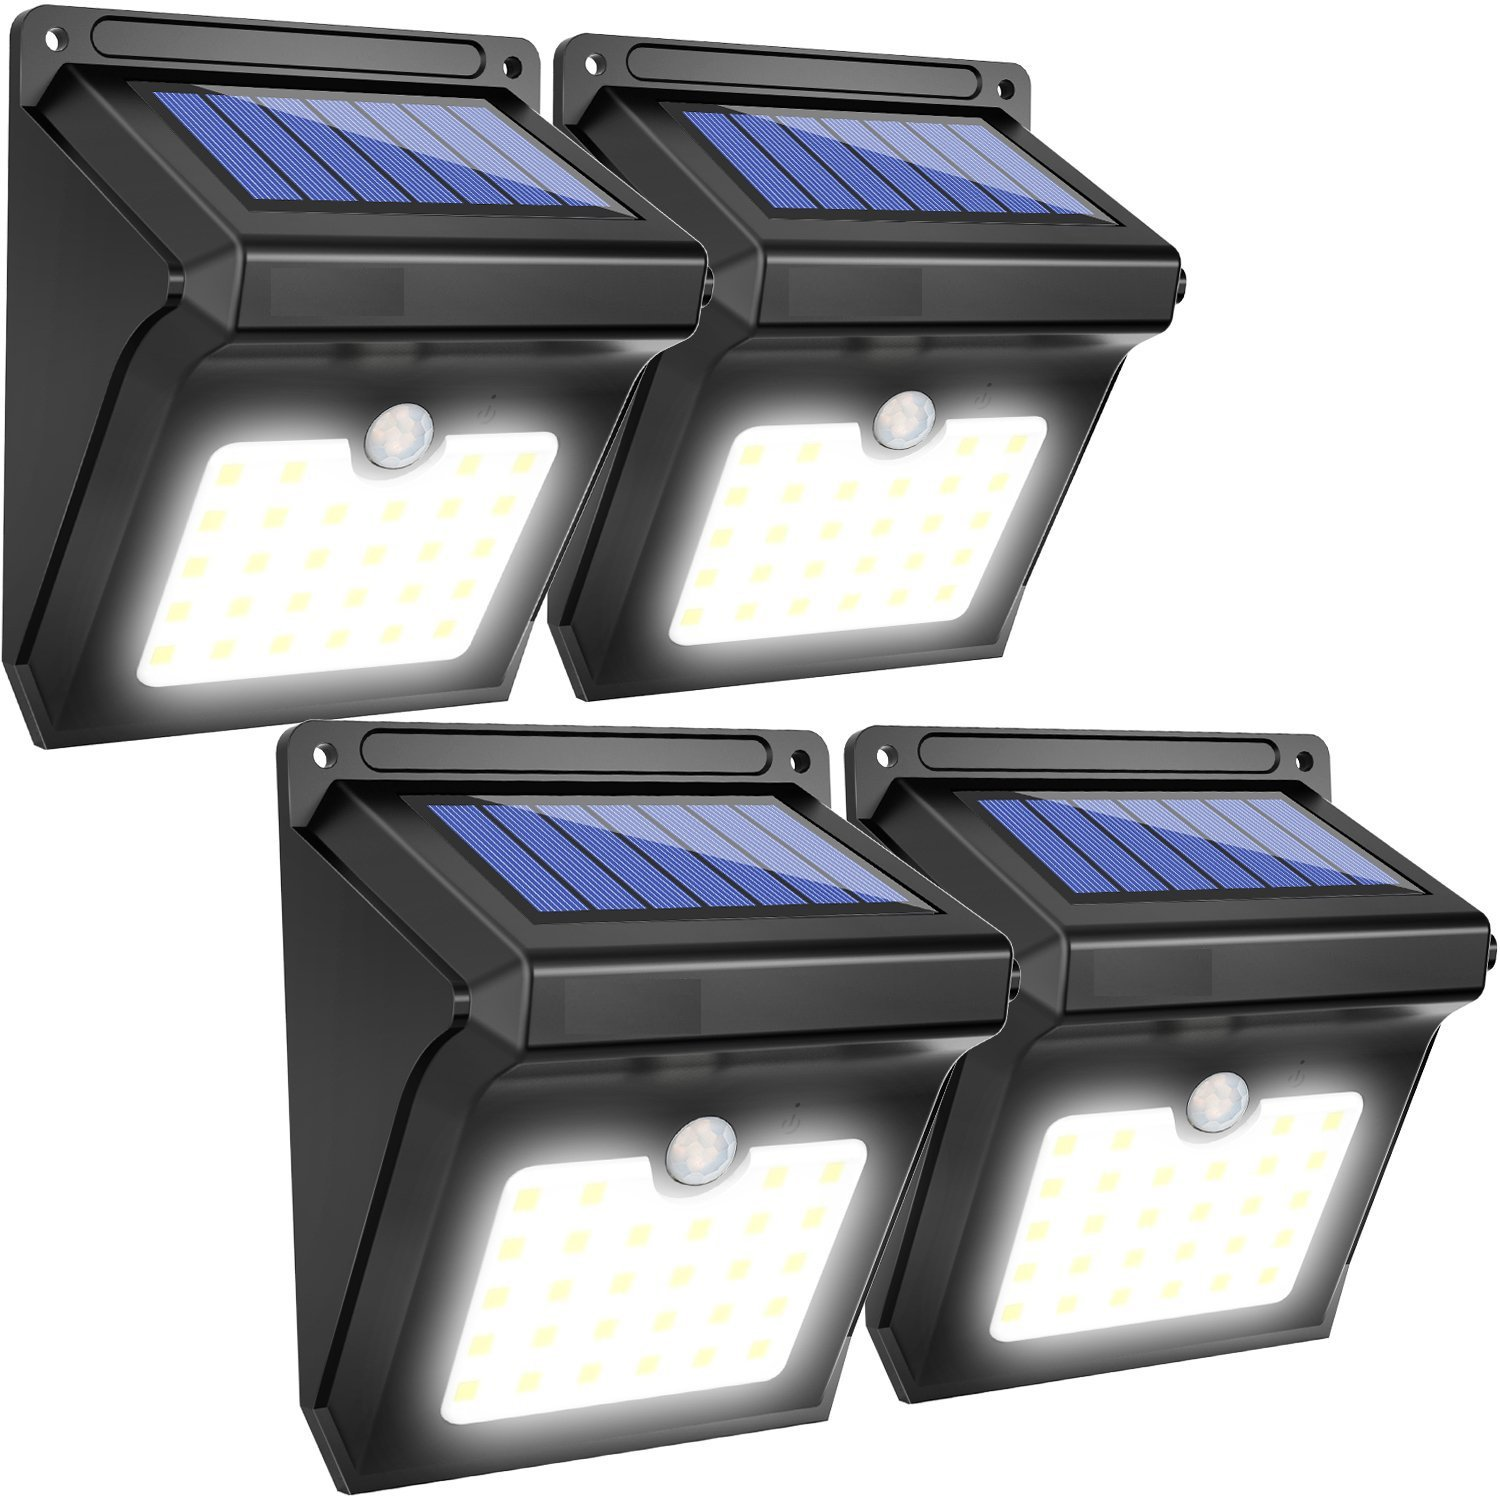 Cislay Solar Lights, Wireless 12 LED Motion Sensor Outdoor Lights with Wide Angle Illumination, Waterproof Security Lights for Outdoor Wall,Back Yard,Fence,Garage,Garden,Driveway -4 Packs